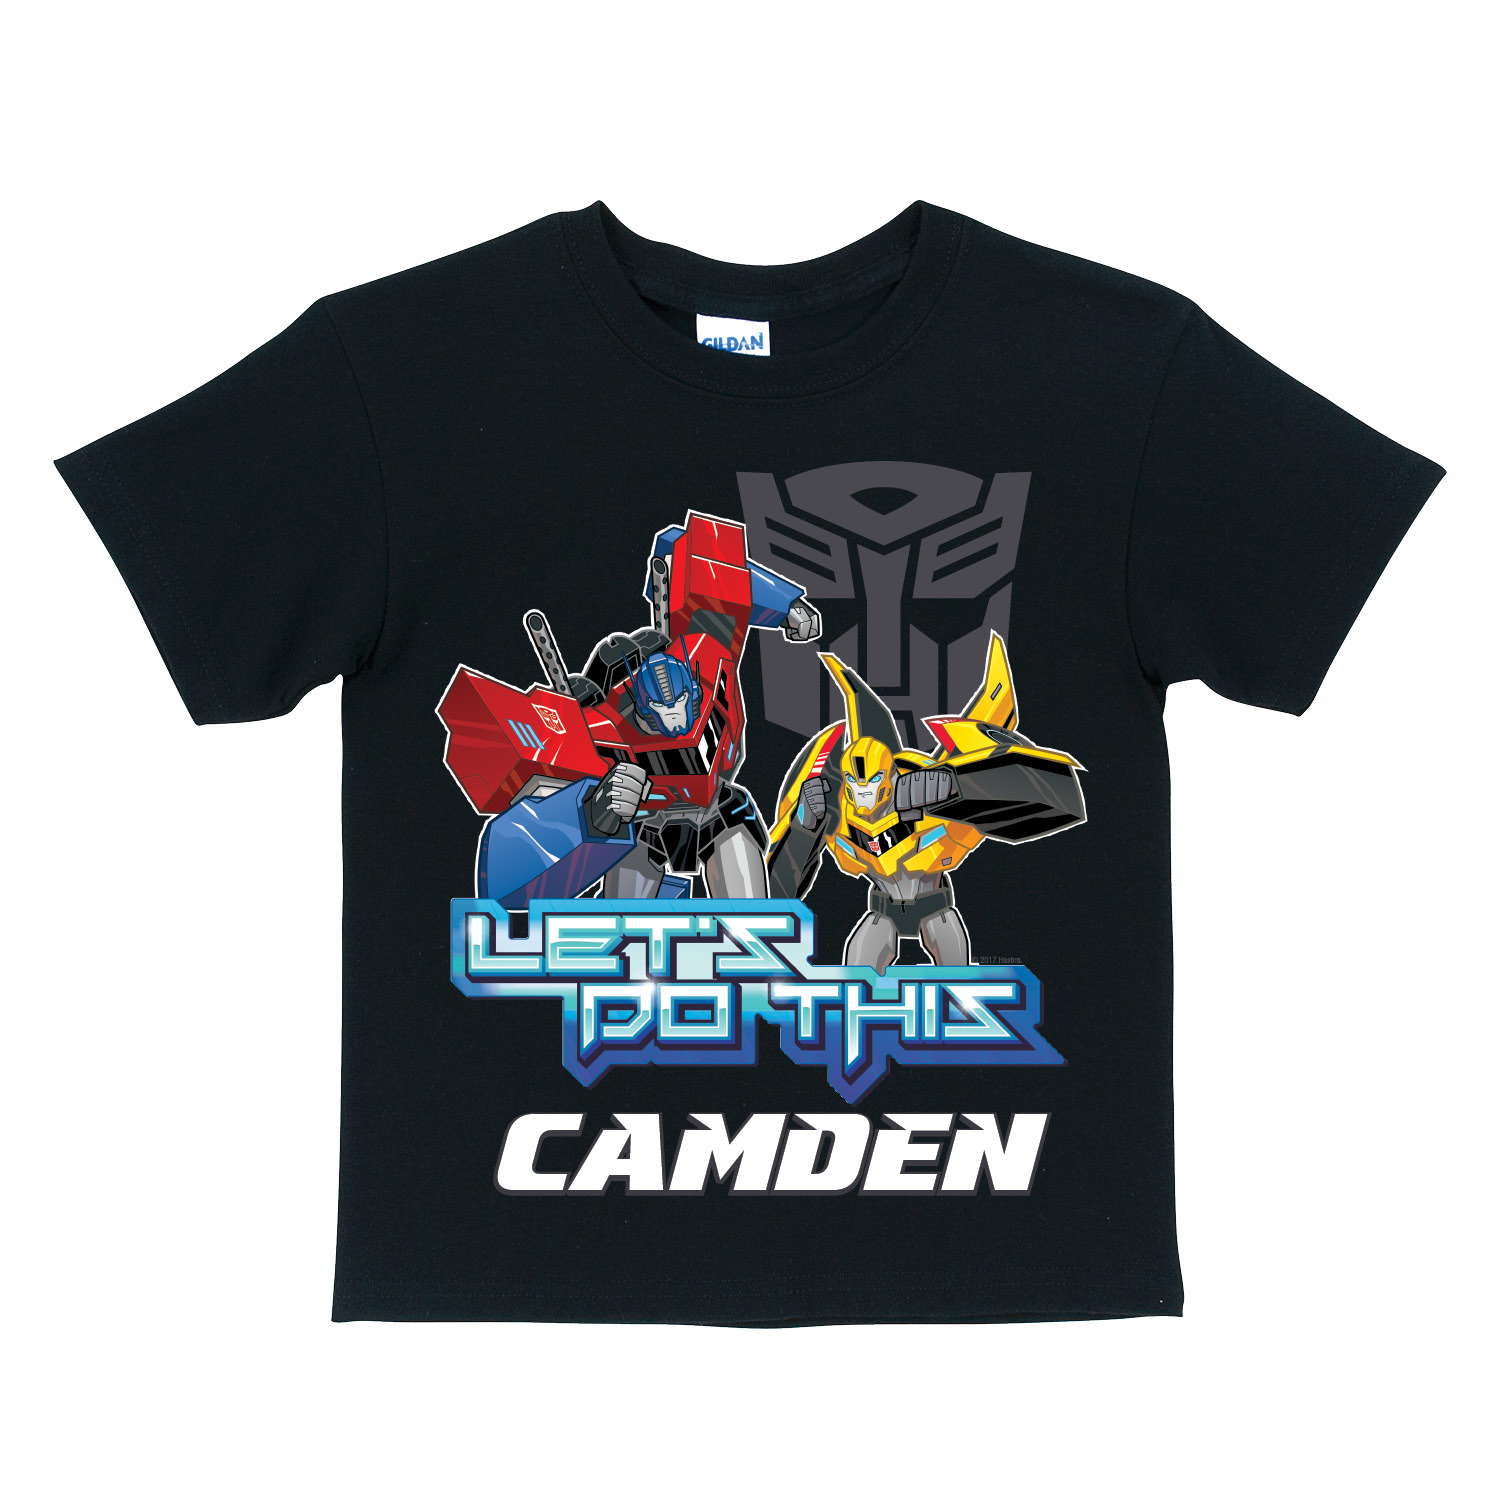 Personalized Black T-Shirt - Transformers Robots in Disguise Let's Do This